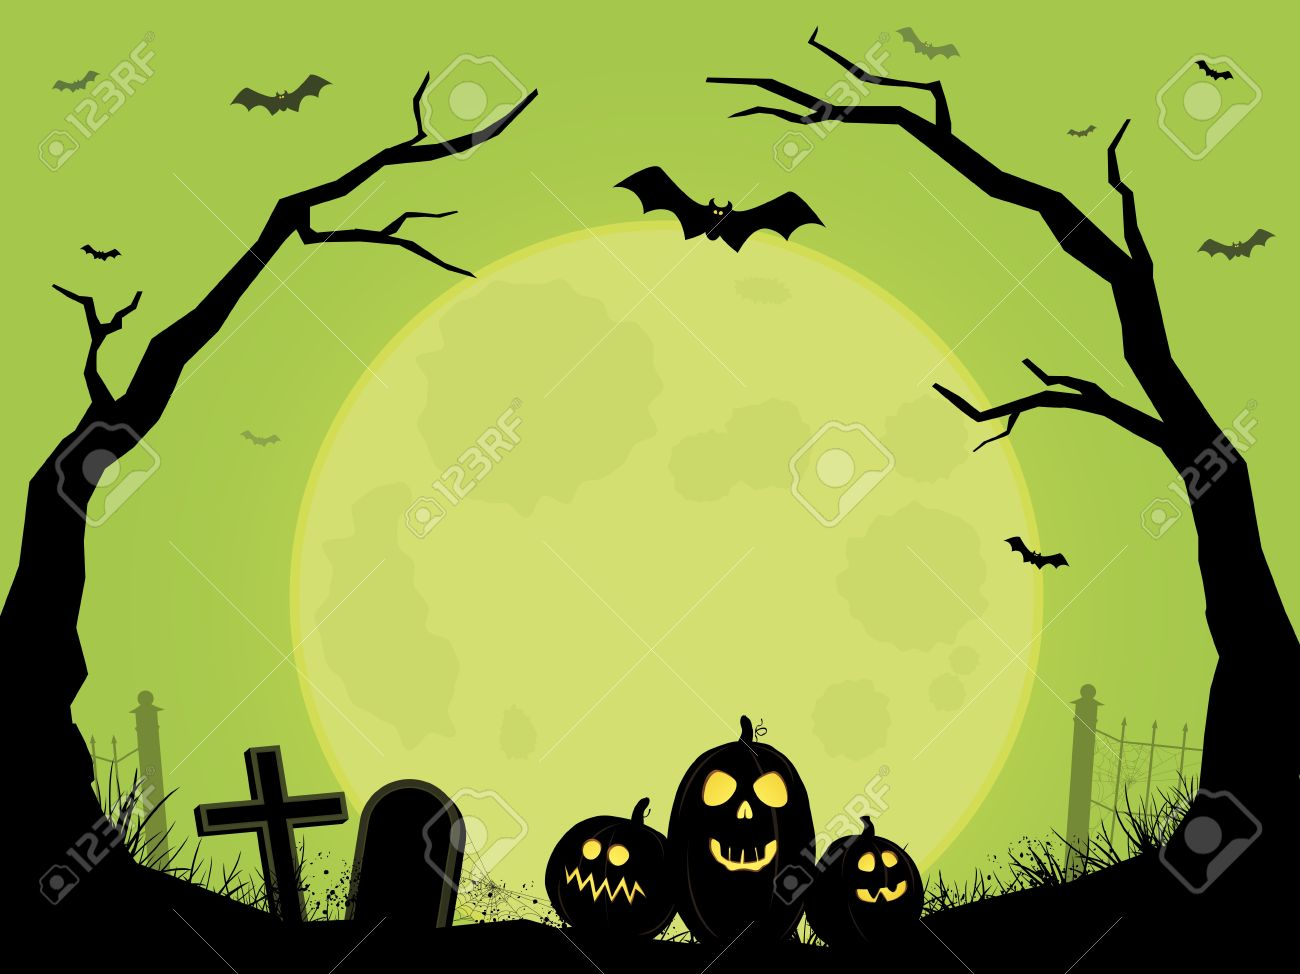 Cemetery Halloween Scene Royalty Free Cliparts, Vectors, And Stock ...